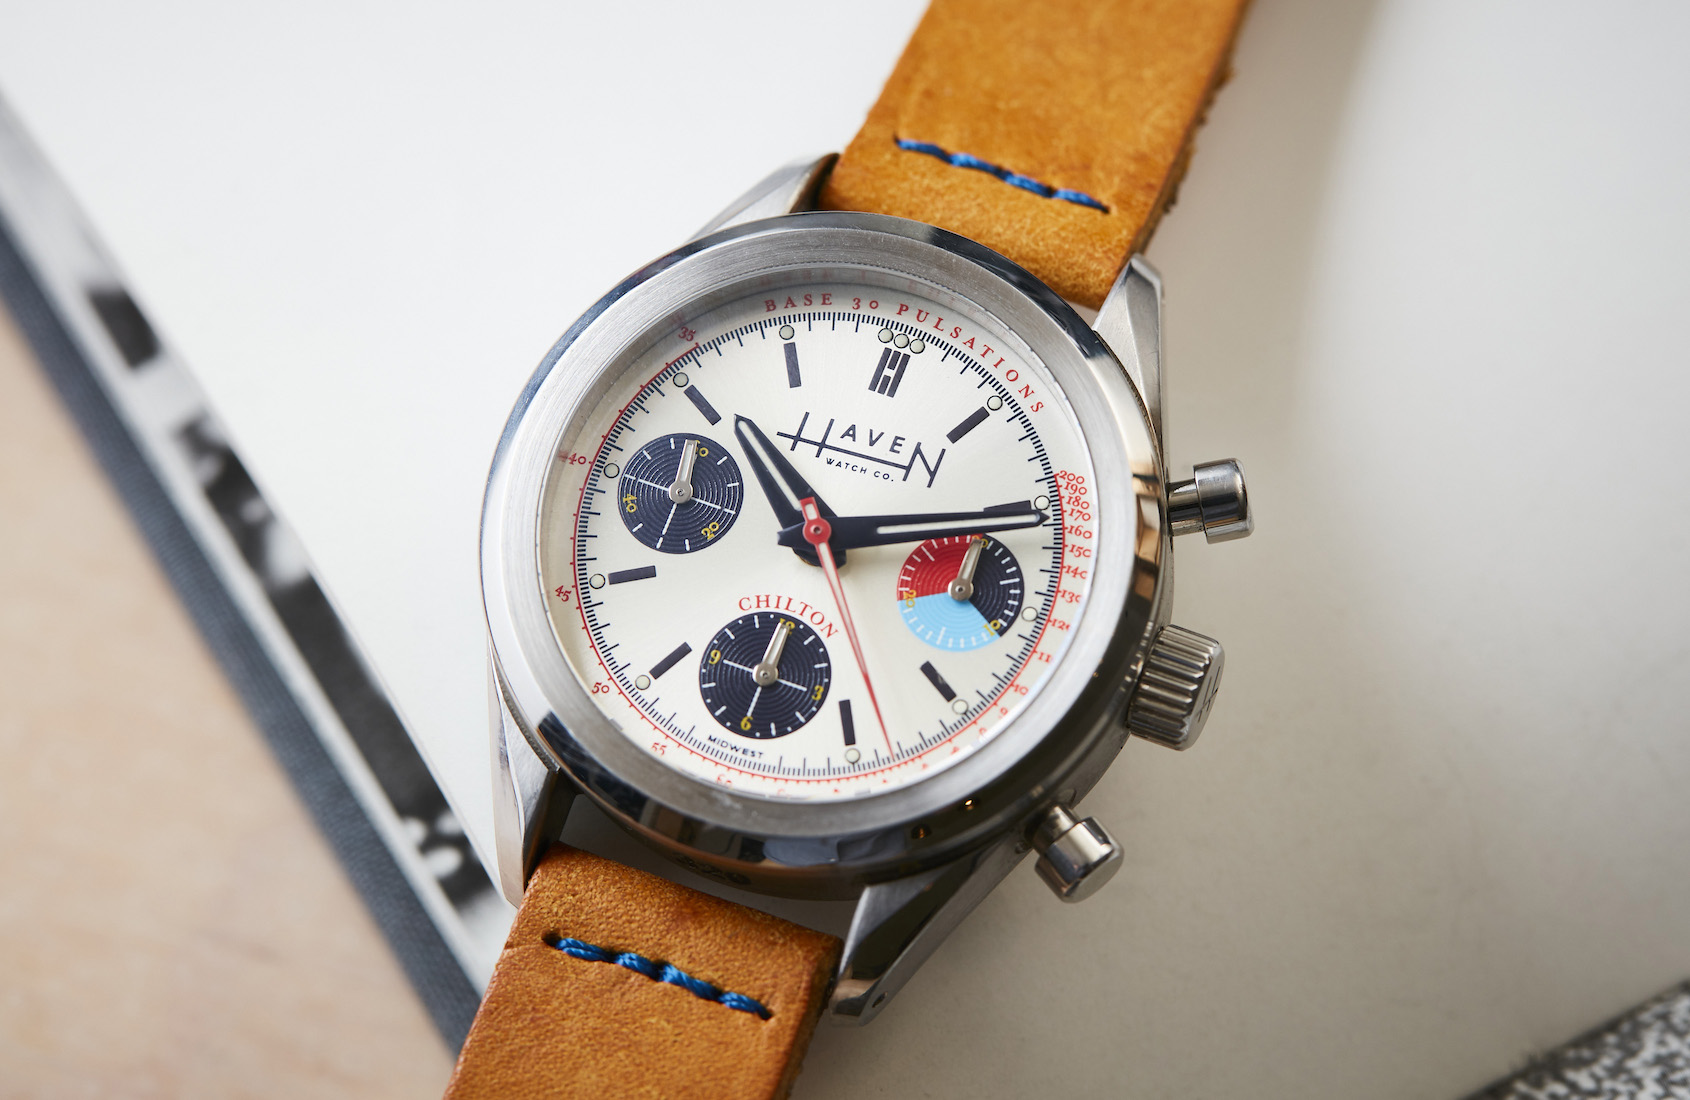 Haven Watch Co. Chilton